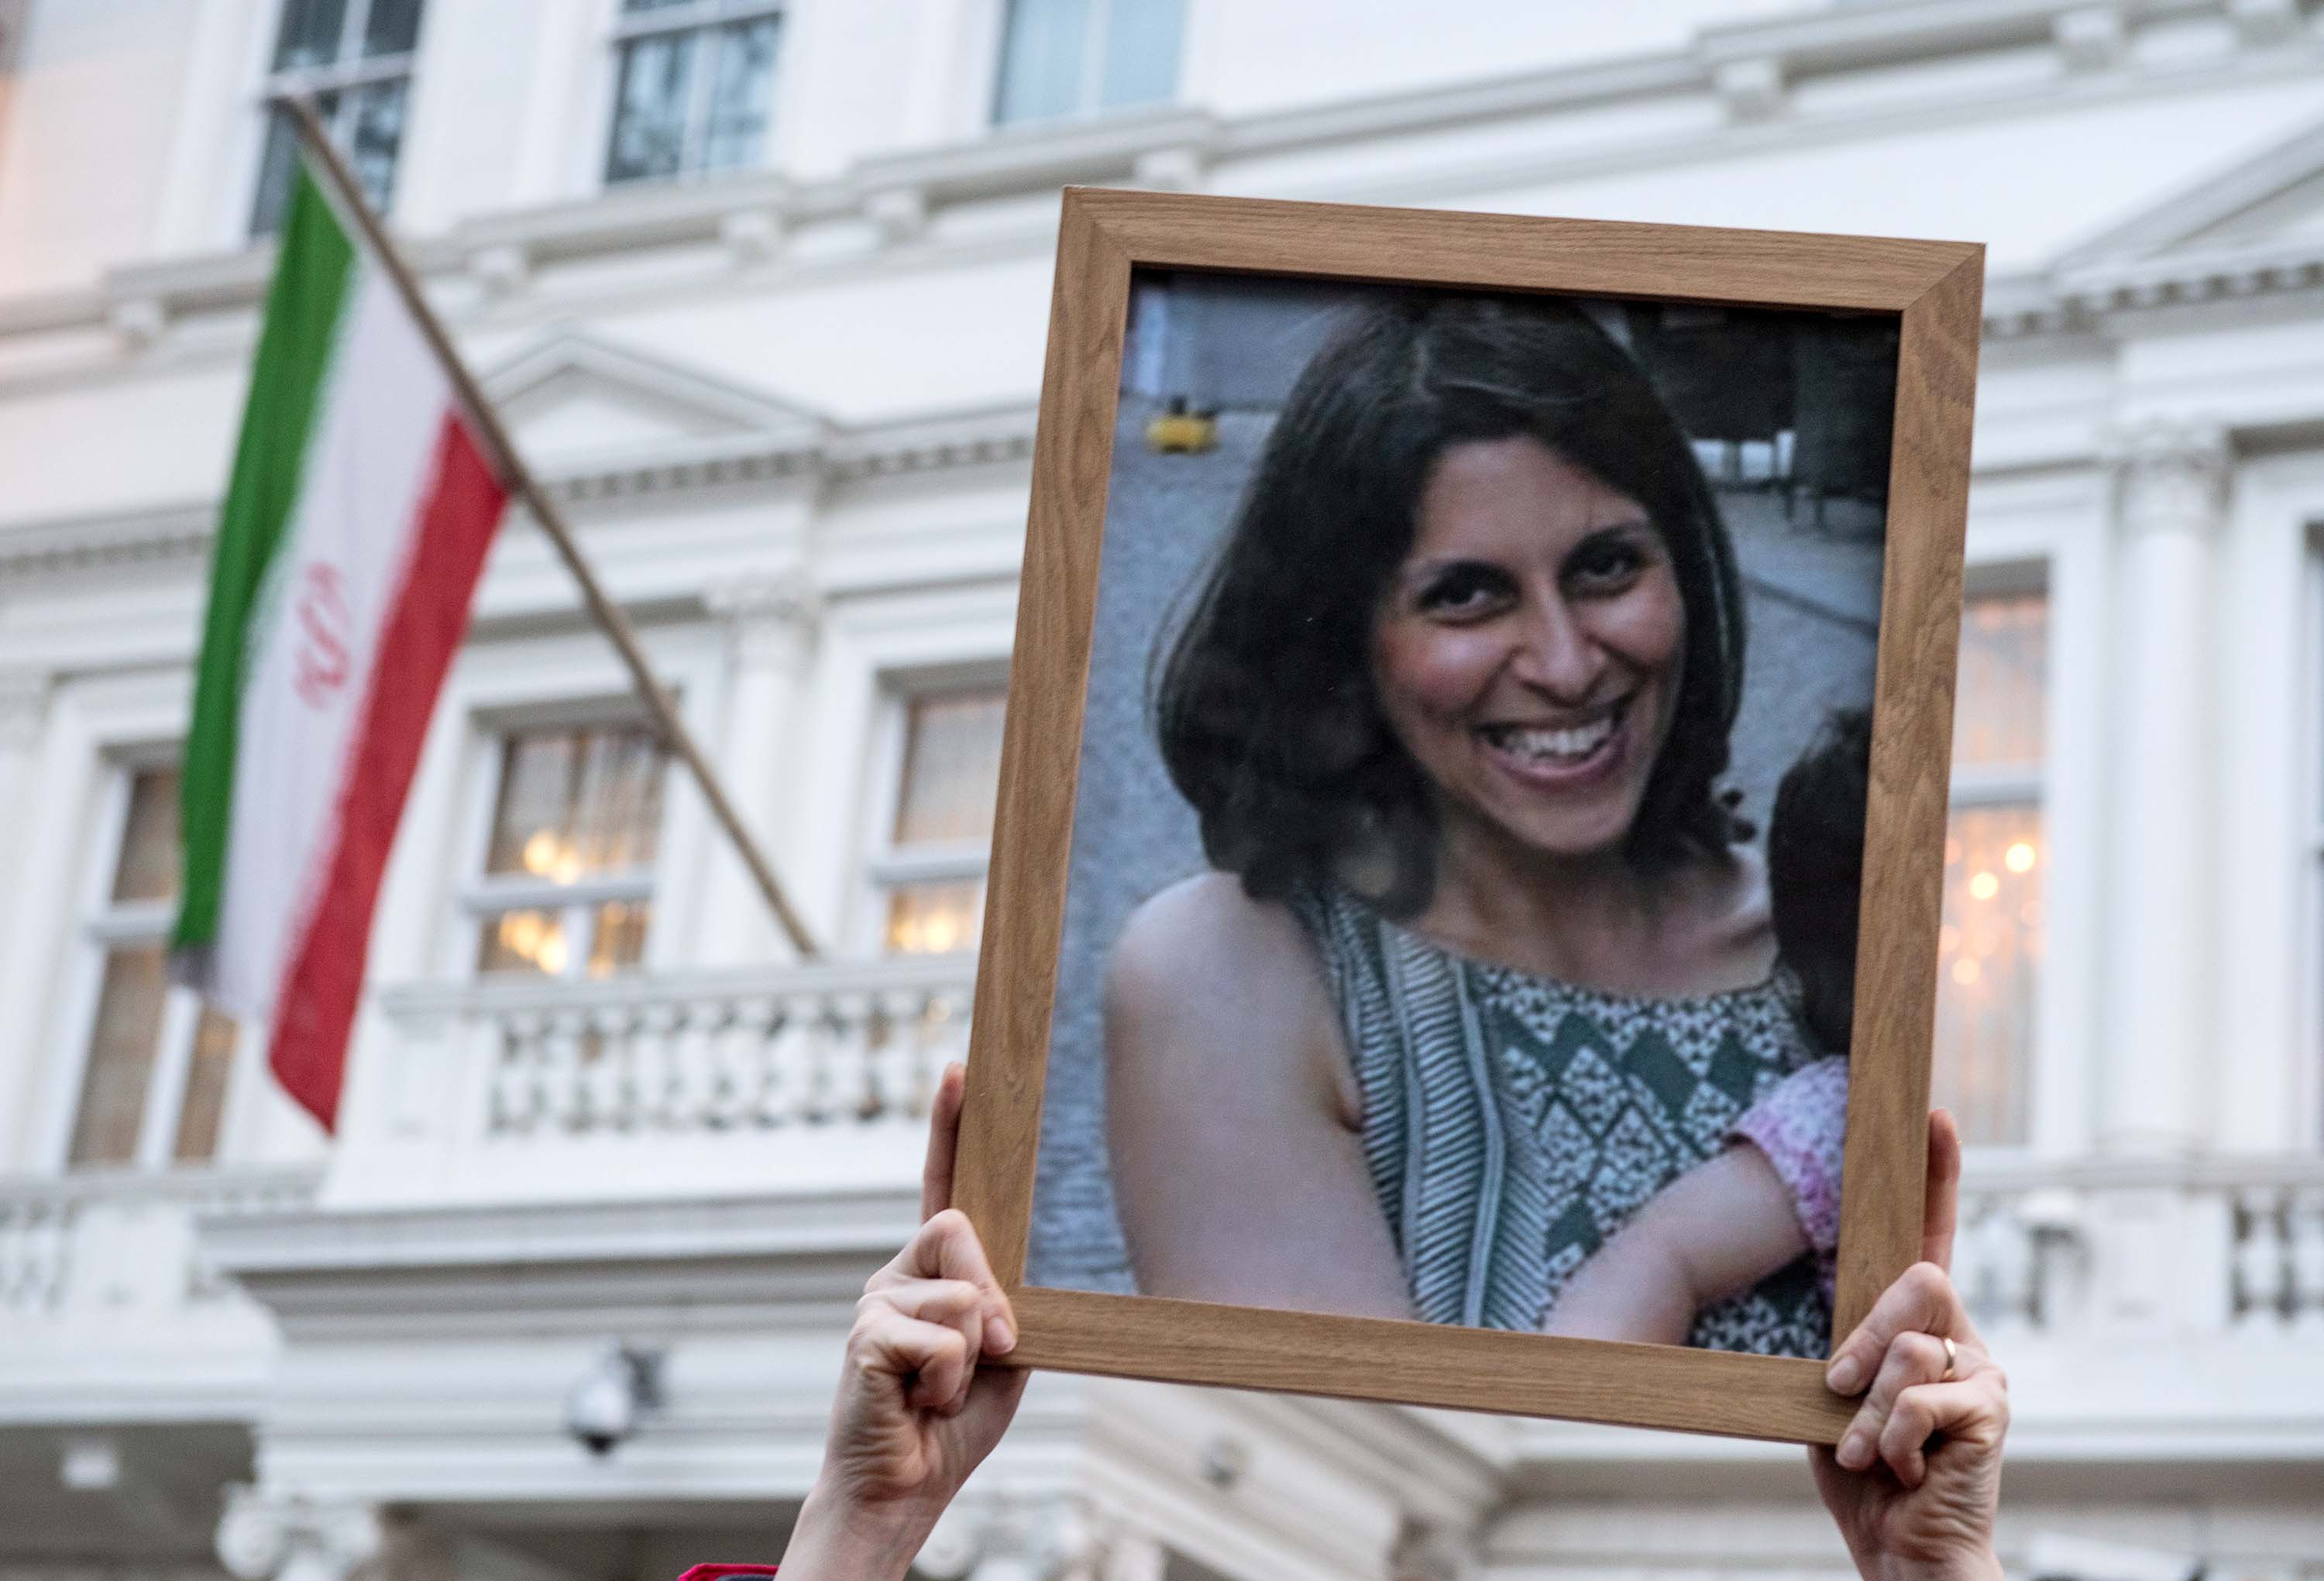 Supporters hold a photo of Nazanin Zaghari-Ratcliffe during a vigil for her outside the Iranian Embassy in London in January 2017.